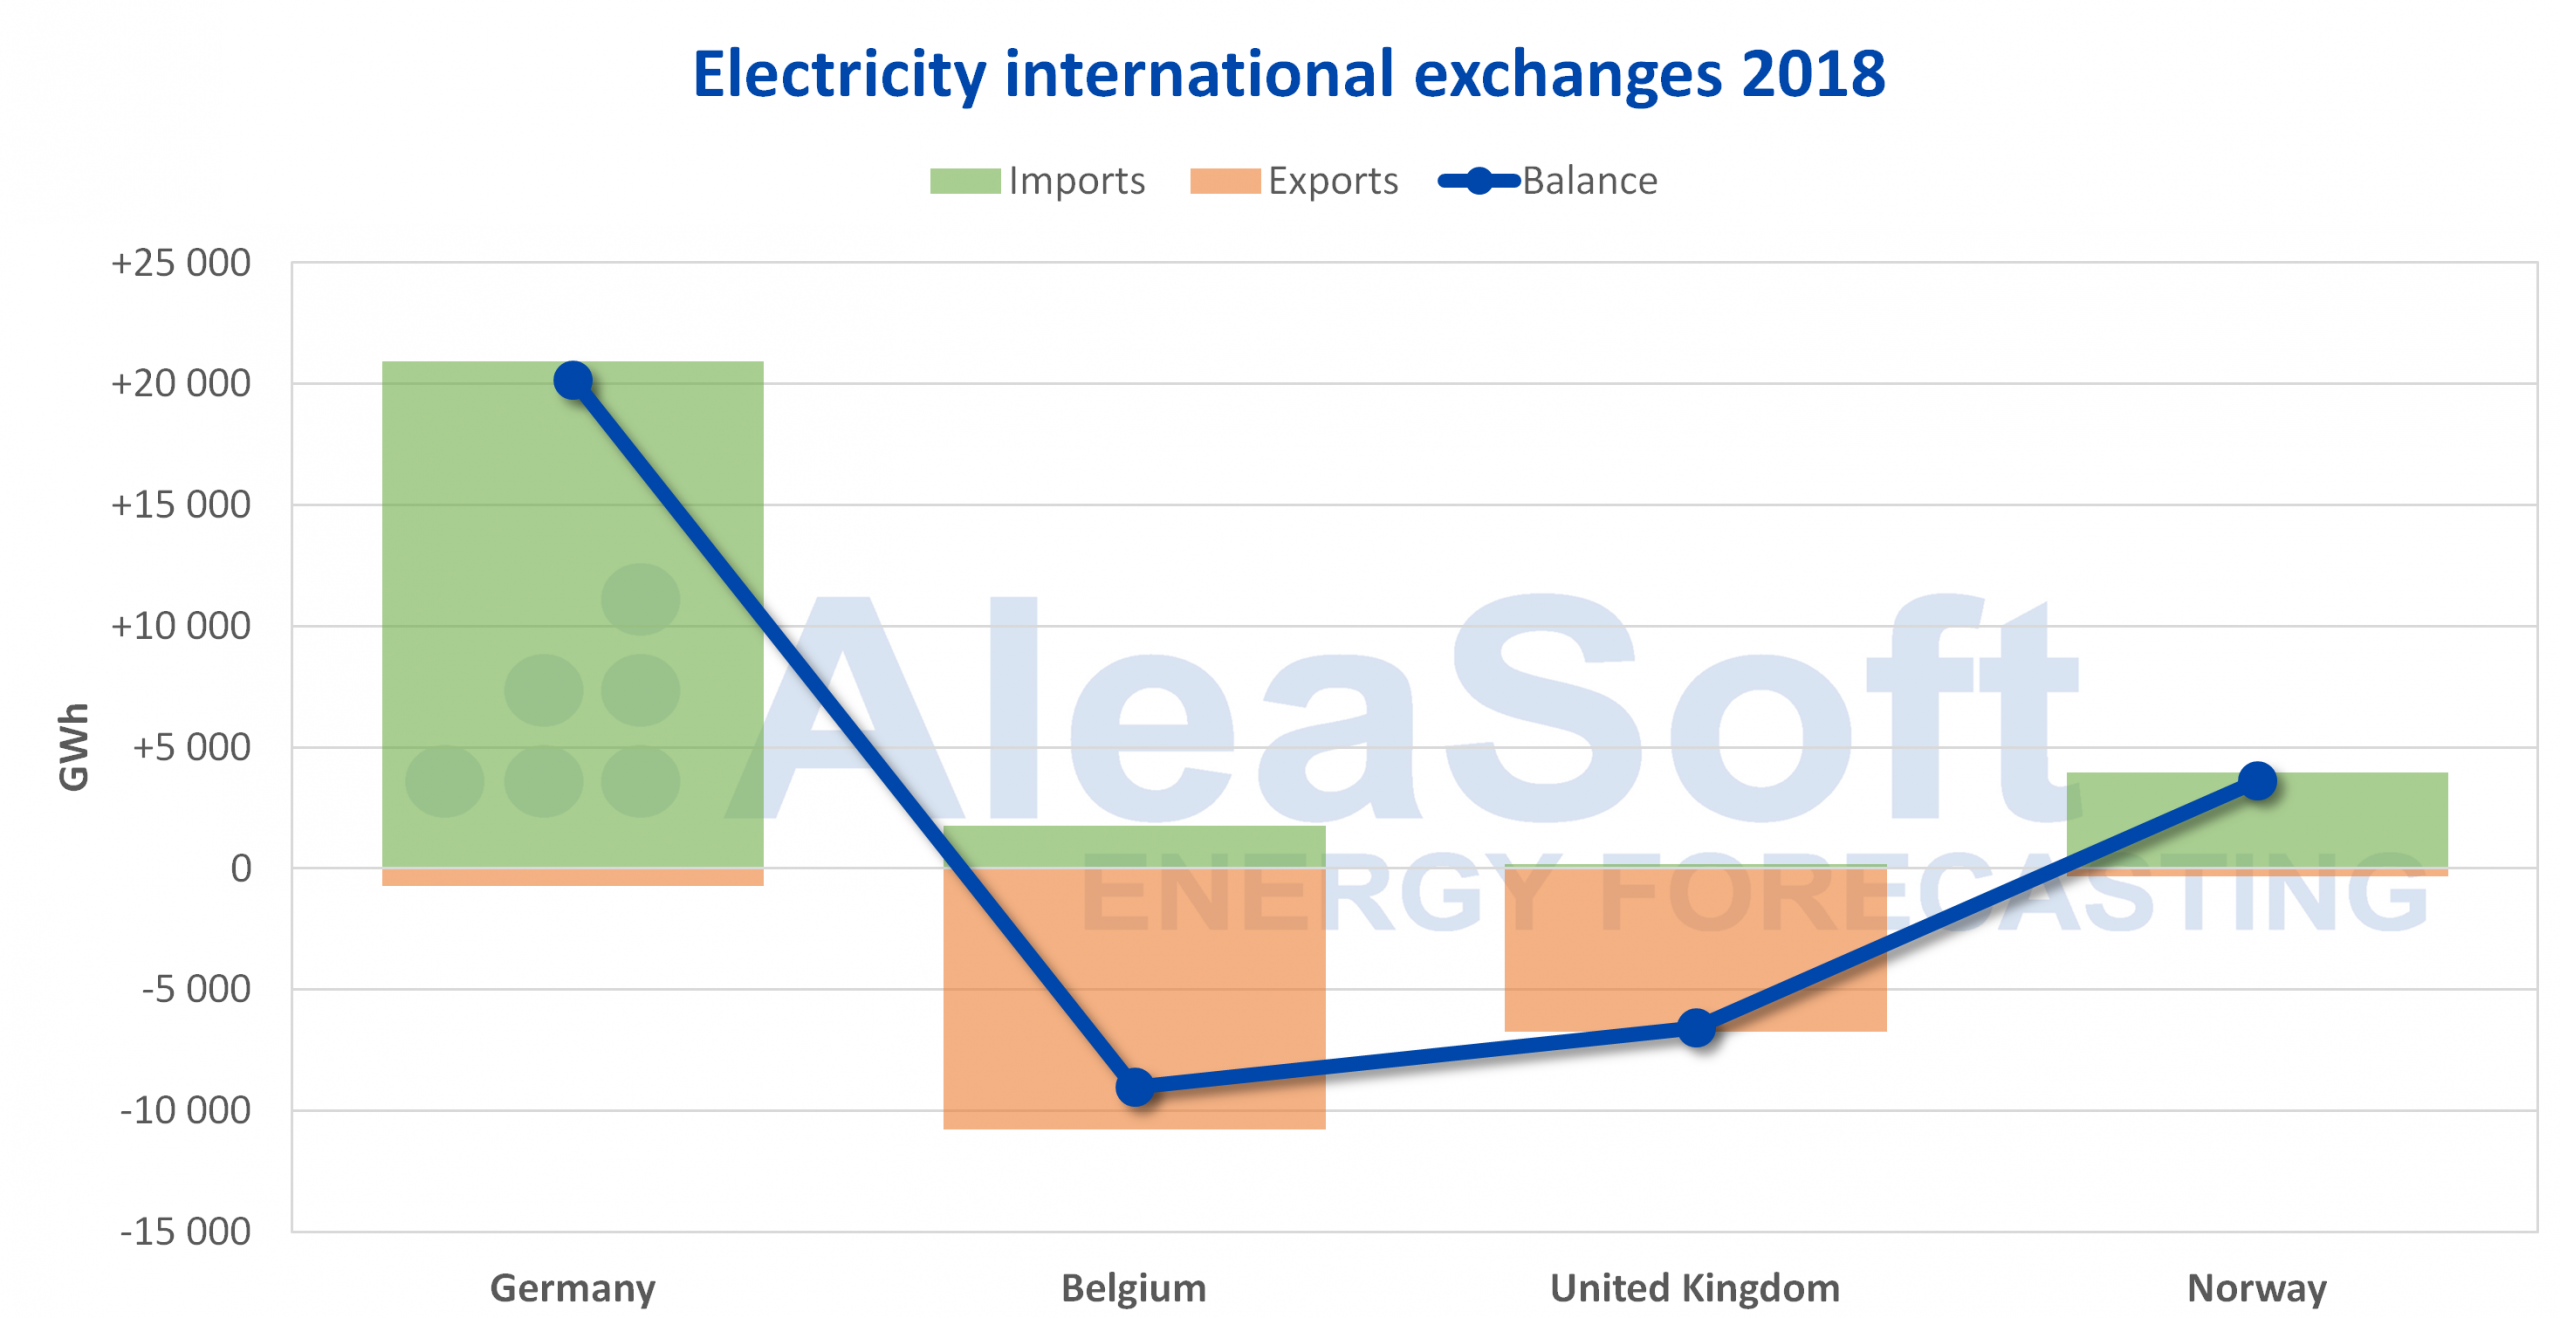 AleaSoft - Netherlands international electricity exchanges 2018